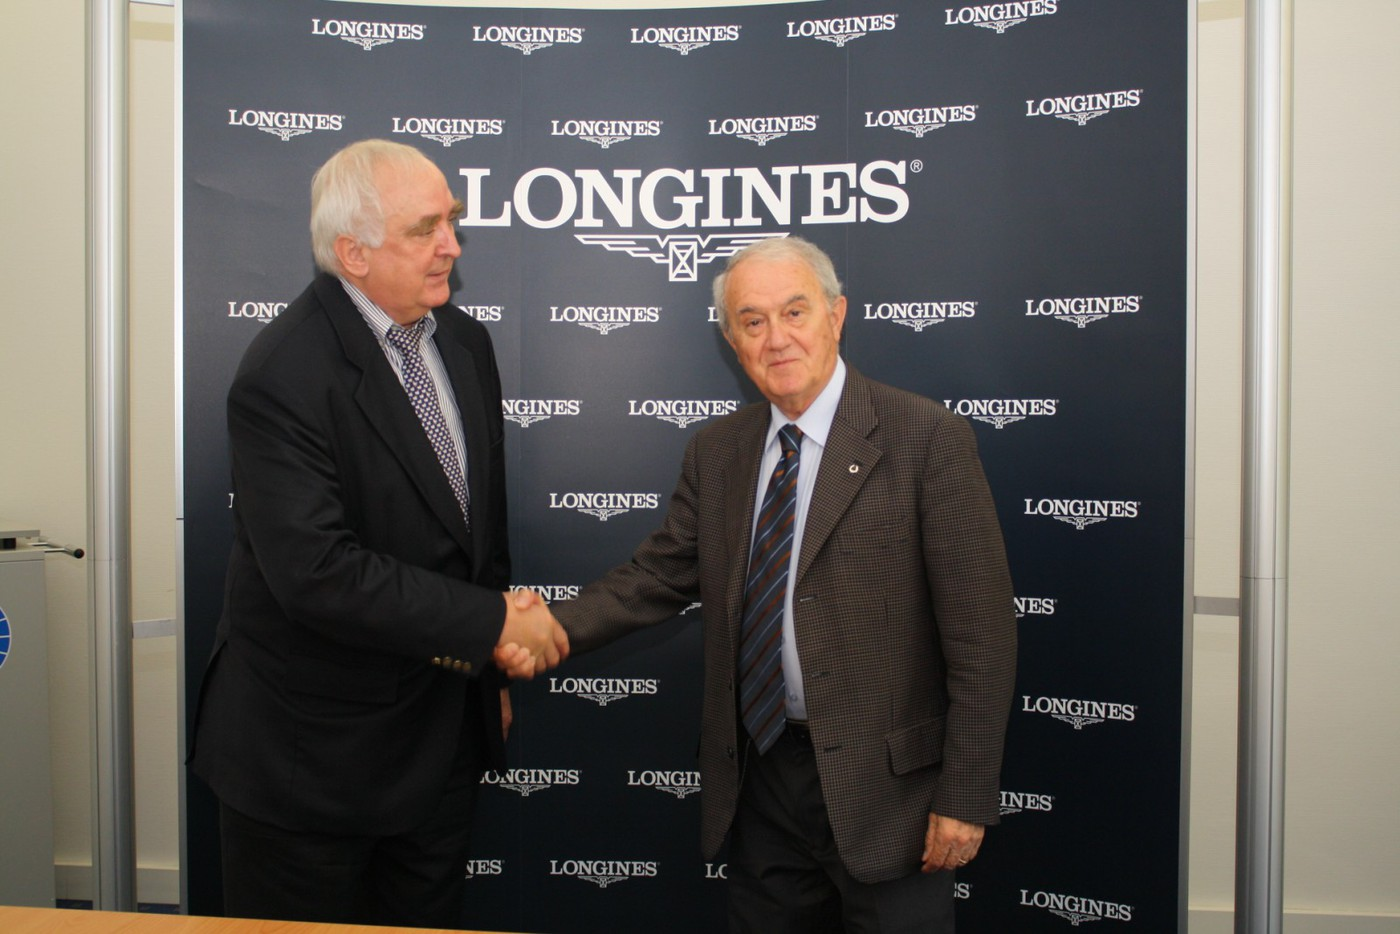 Longines Gymnastics Event: Longines renews FIG partnership 2